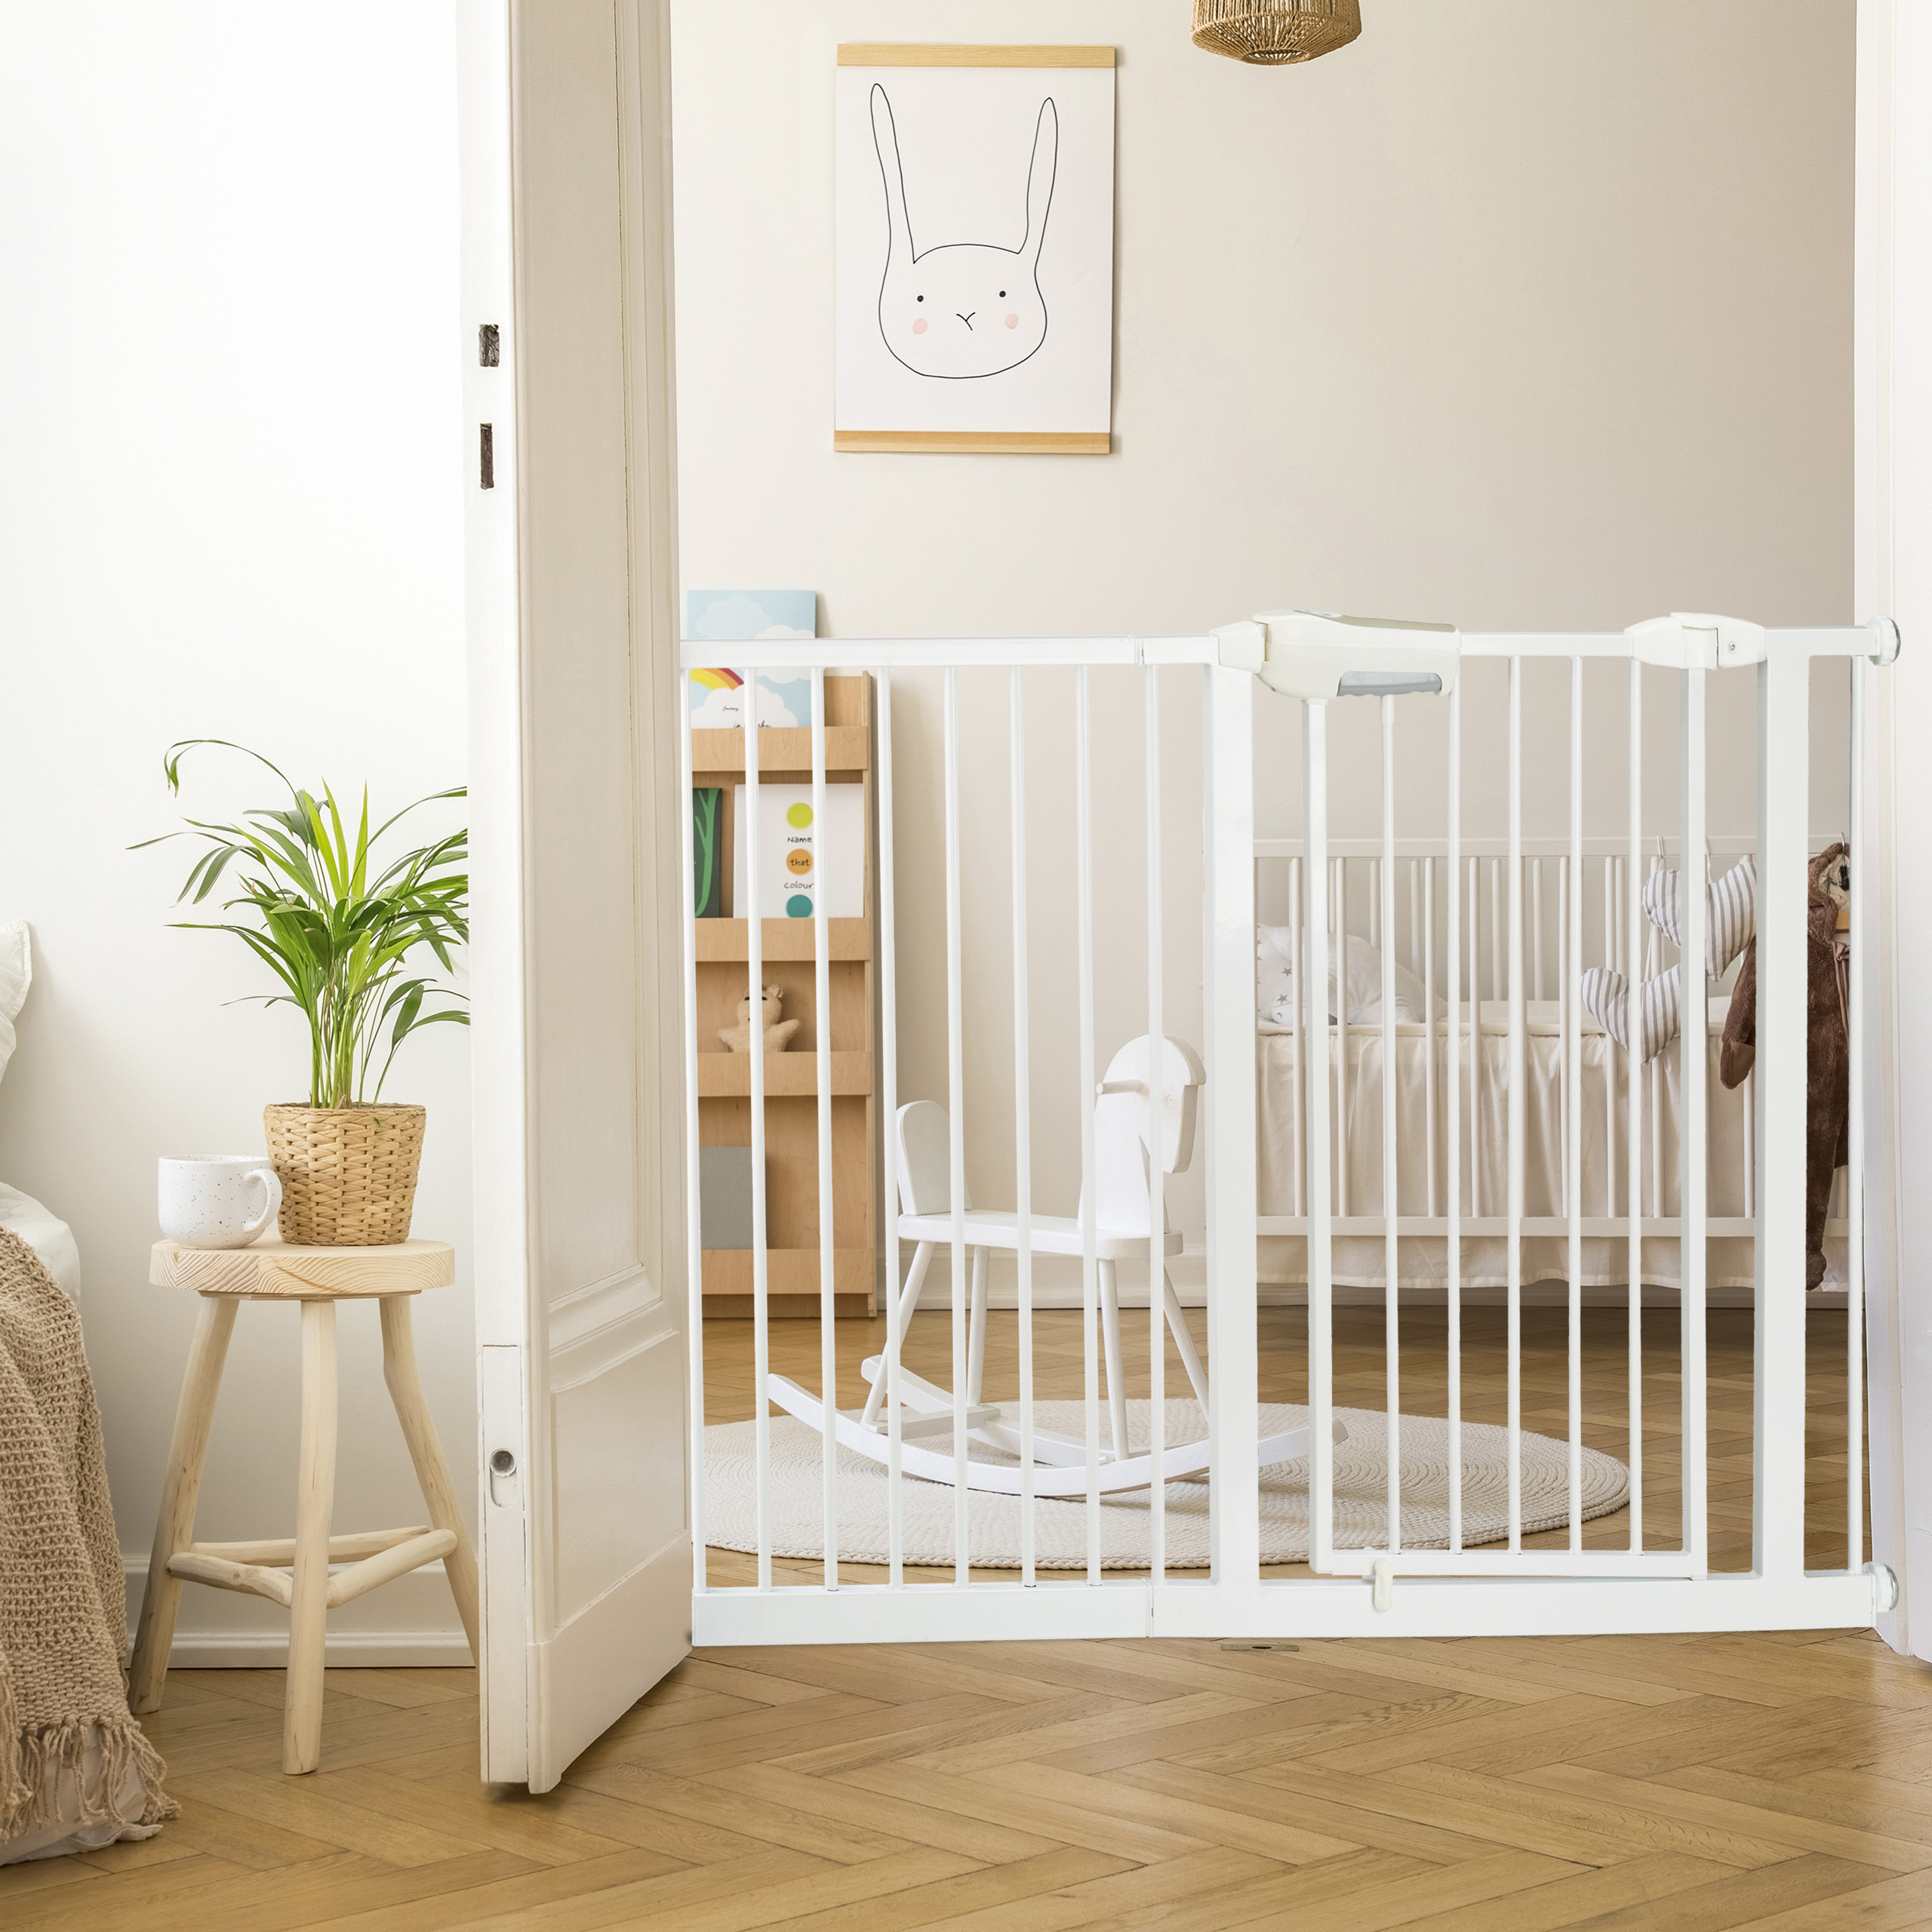 Pressure-Fit-Baby-Safety-Gate-Extension-Security-Barrier-for-Stairs-and-Doors thumbnail 13